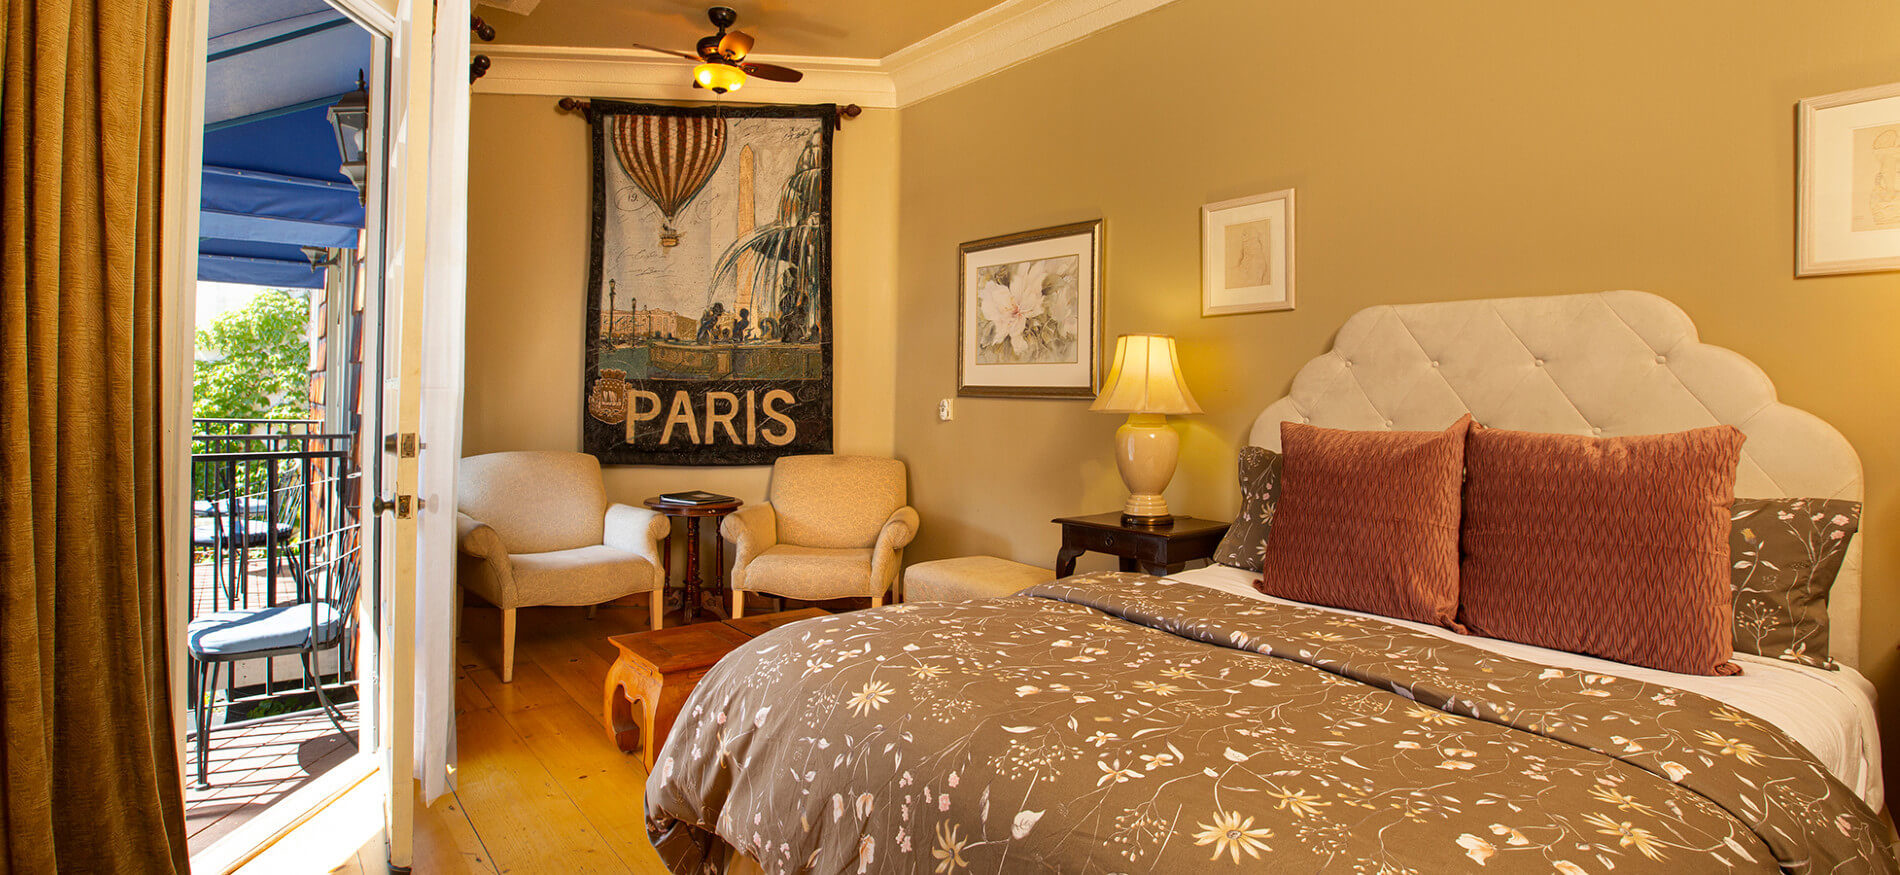 cream and yellow bedroom with tan colored comforter, red pillows, night stand with lamp, pictures on wall and Paris Banner hanging